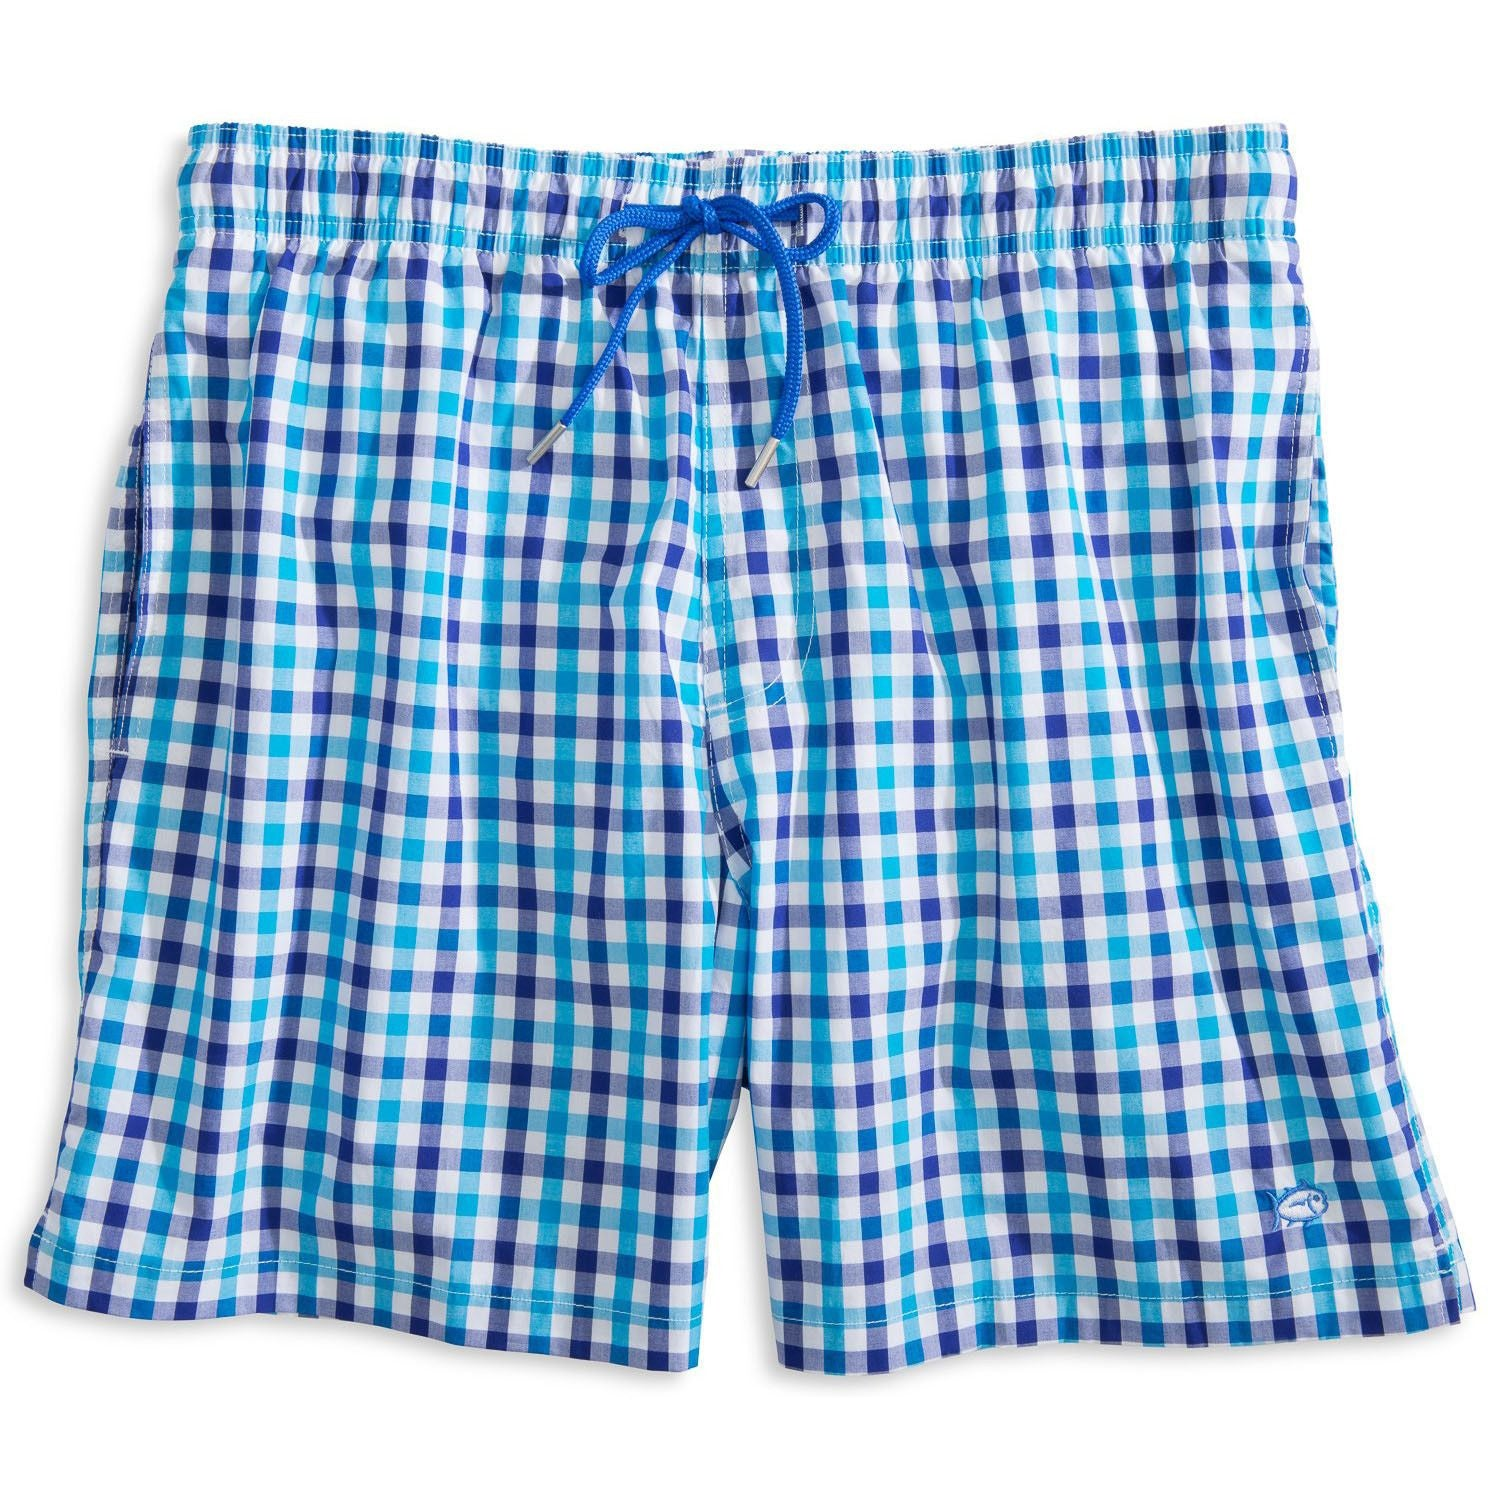 6734222acd Gingham Swim Trunks | Southern Tide - Tide and Peak Outfitters